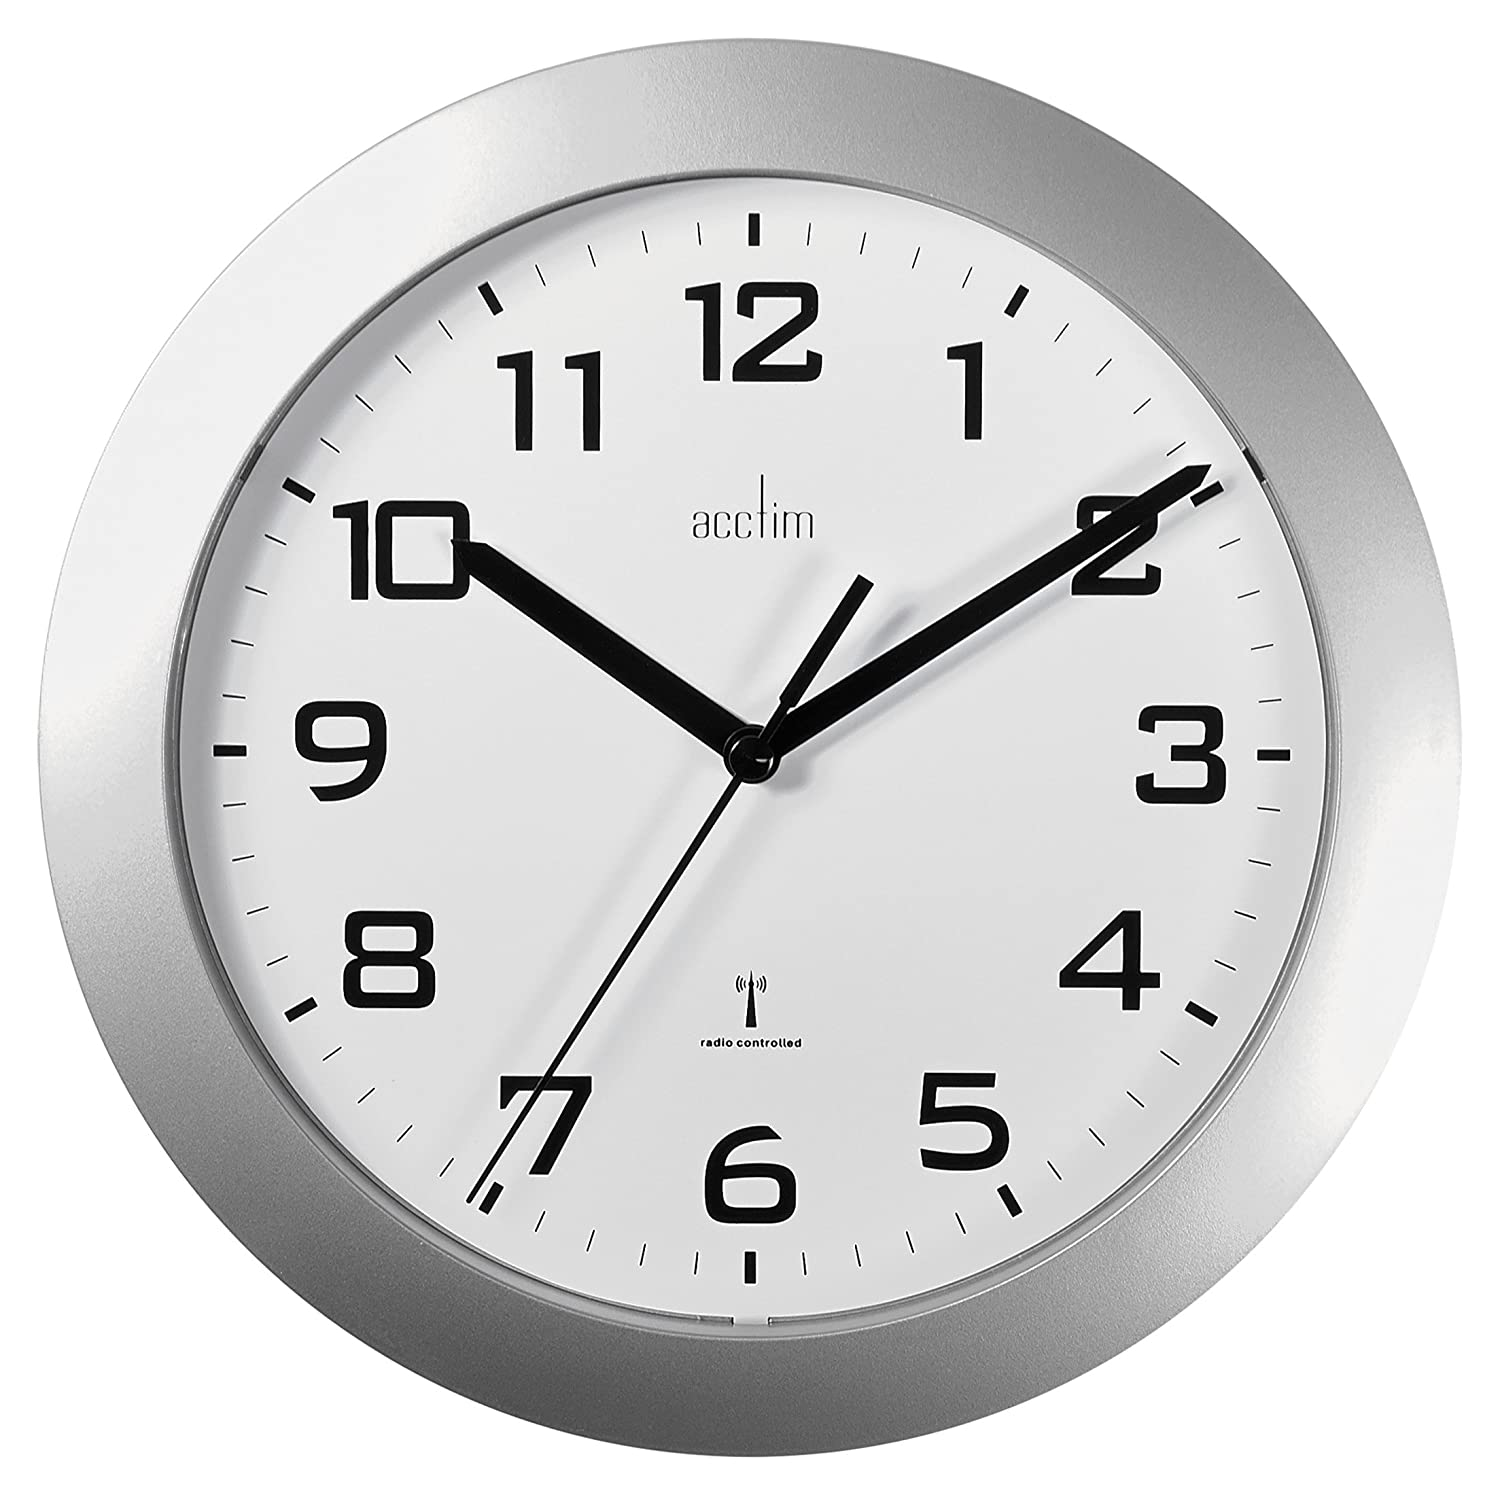 Acctim 74367 peron radio controlled wall clock silver amazon acctim 74367 peron radio controlled wall clock silver amazon kitchen home amipublicfo Image collections